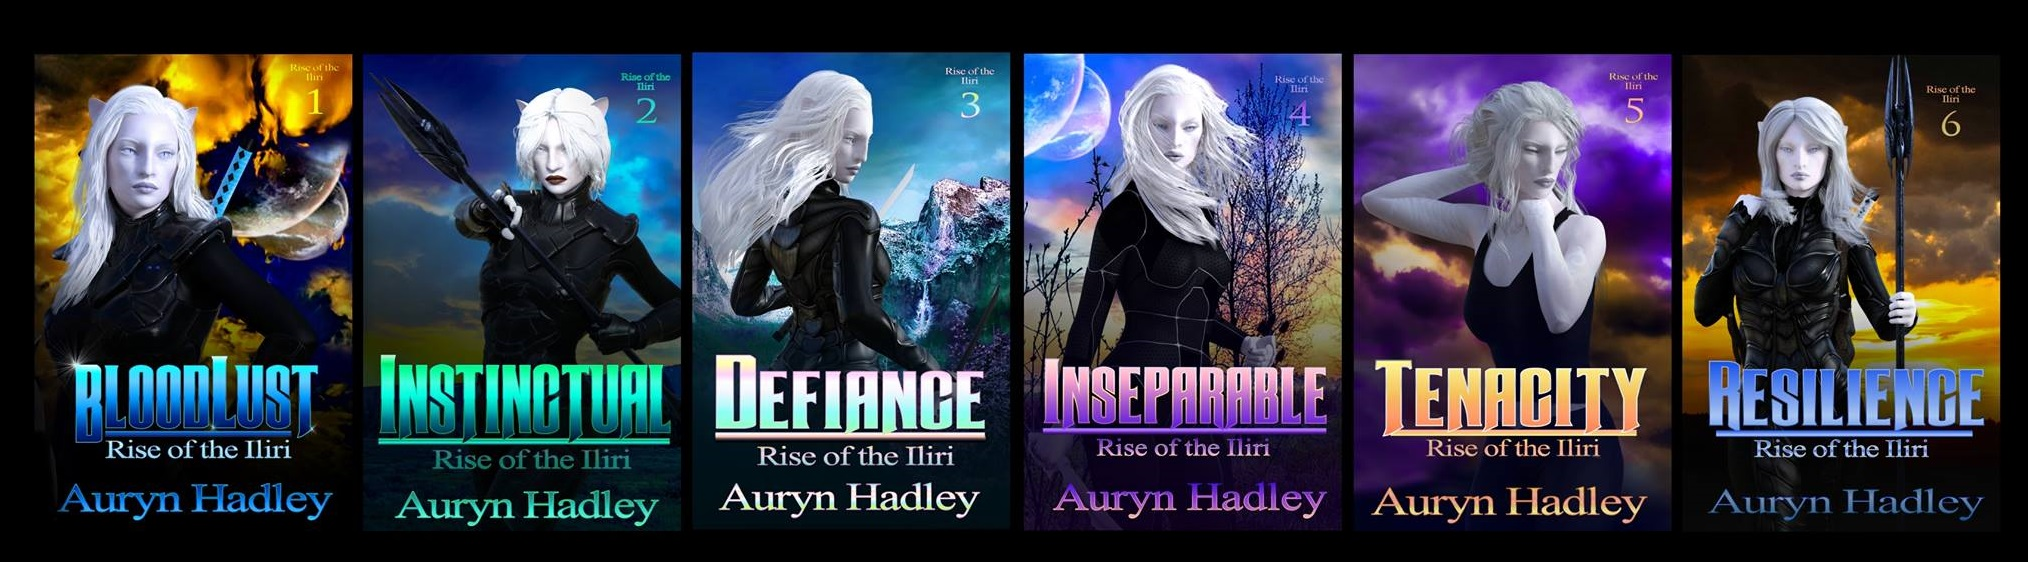 Rise of the Iliri by Auryn Hadley